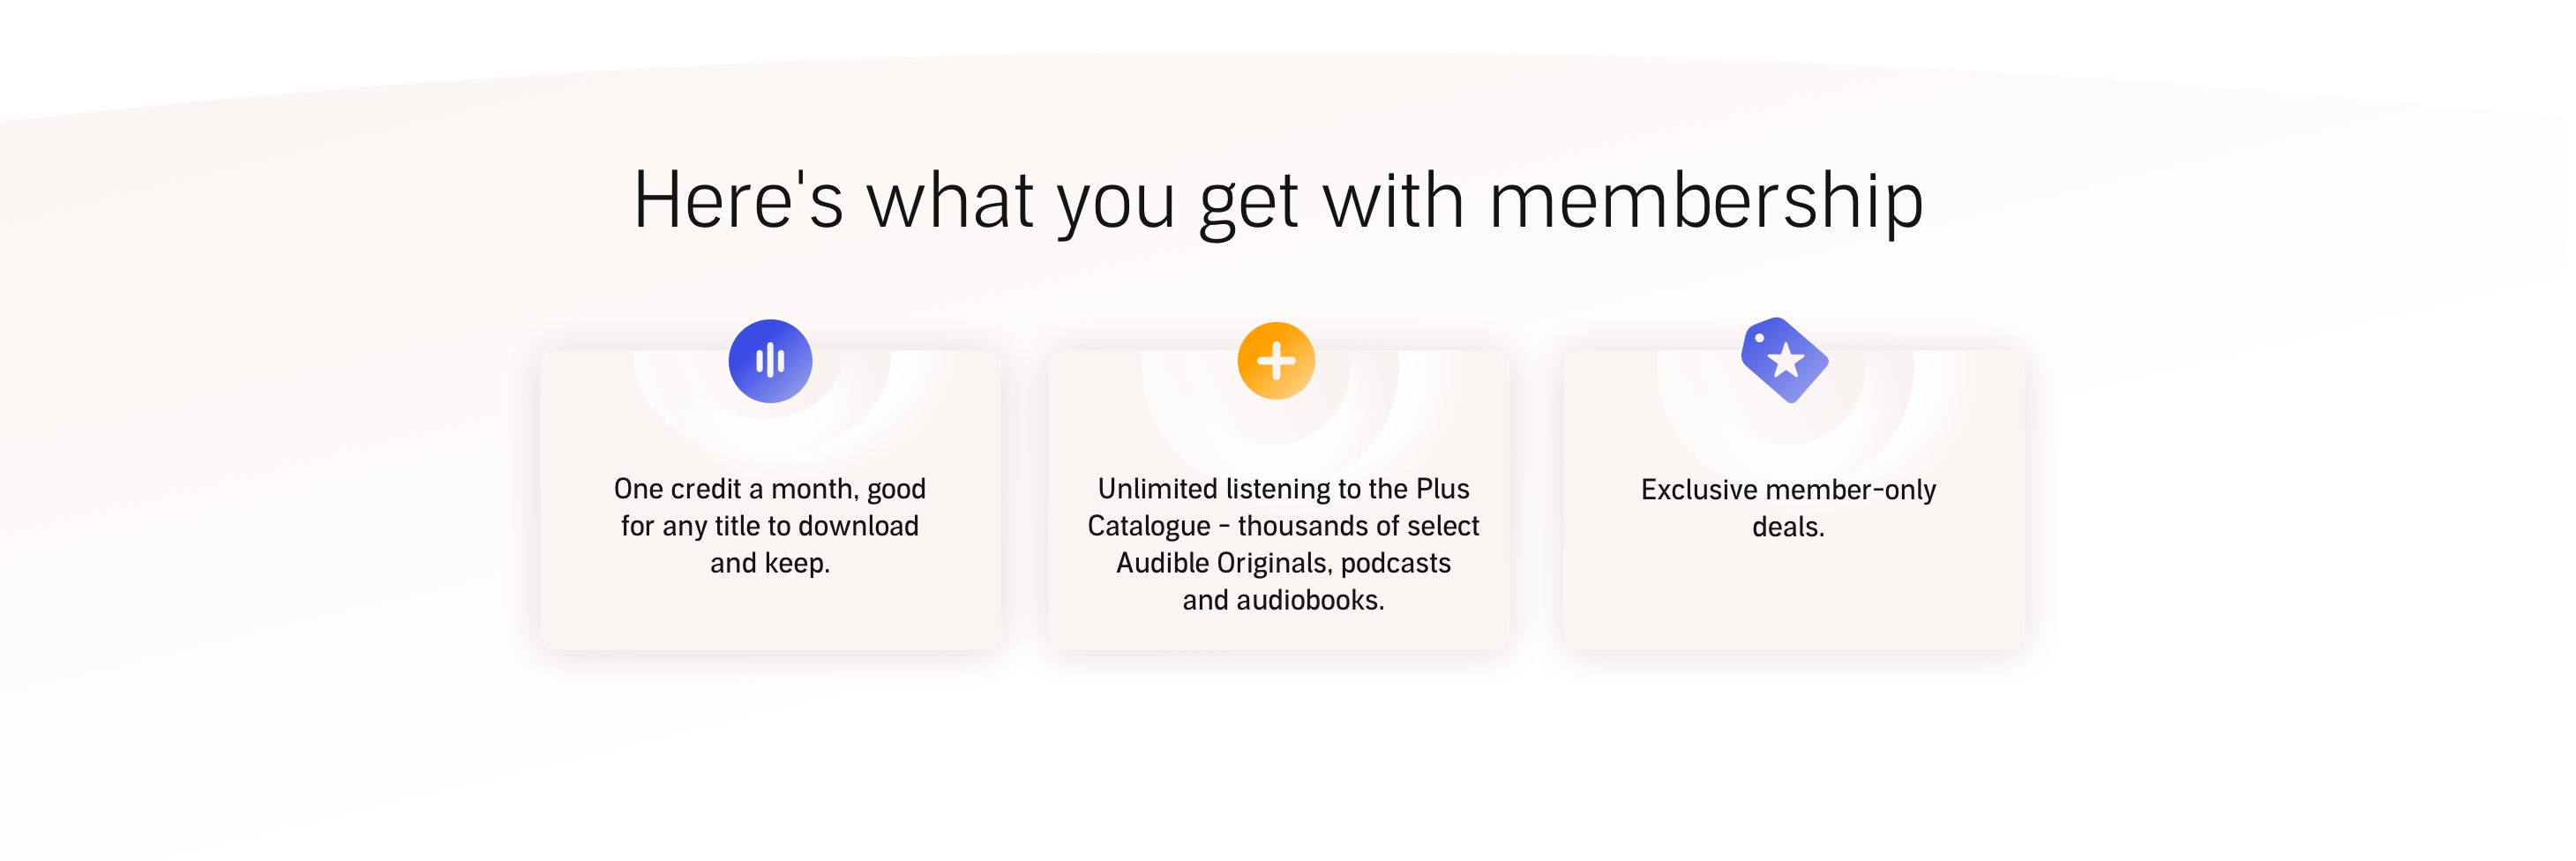 Here's what you get with membership